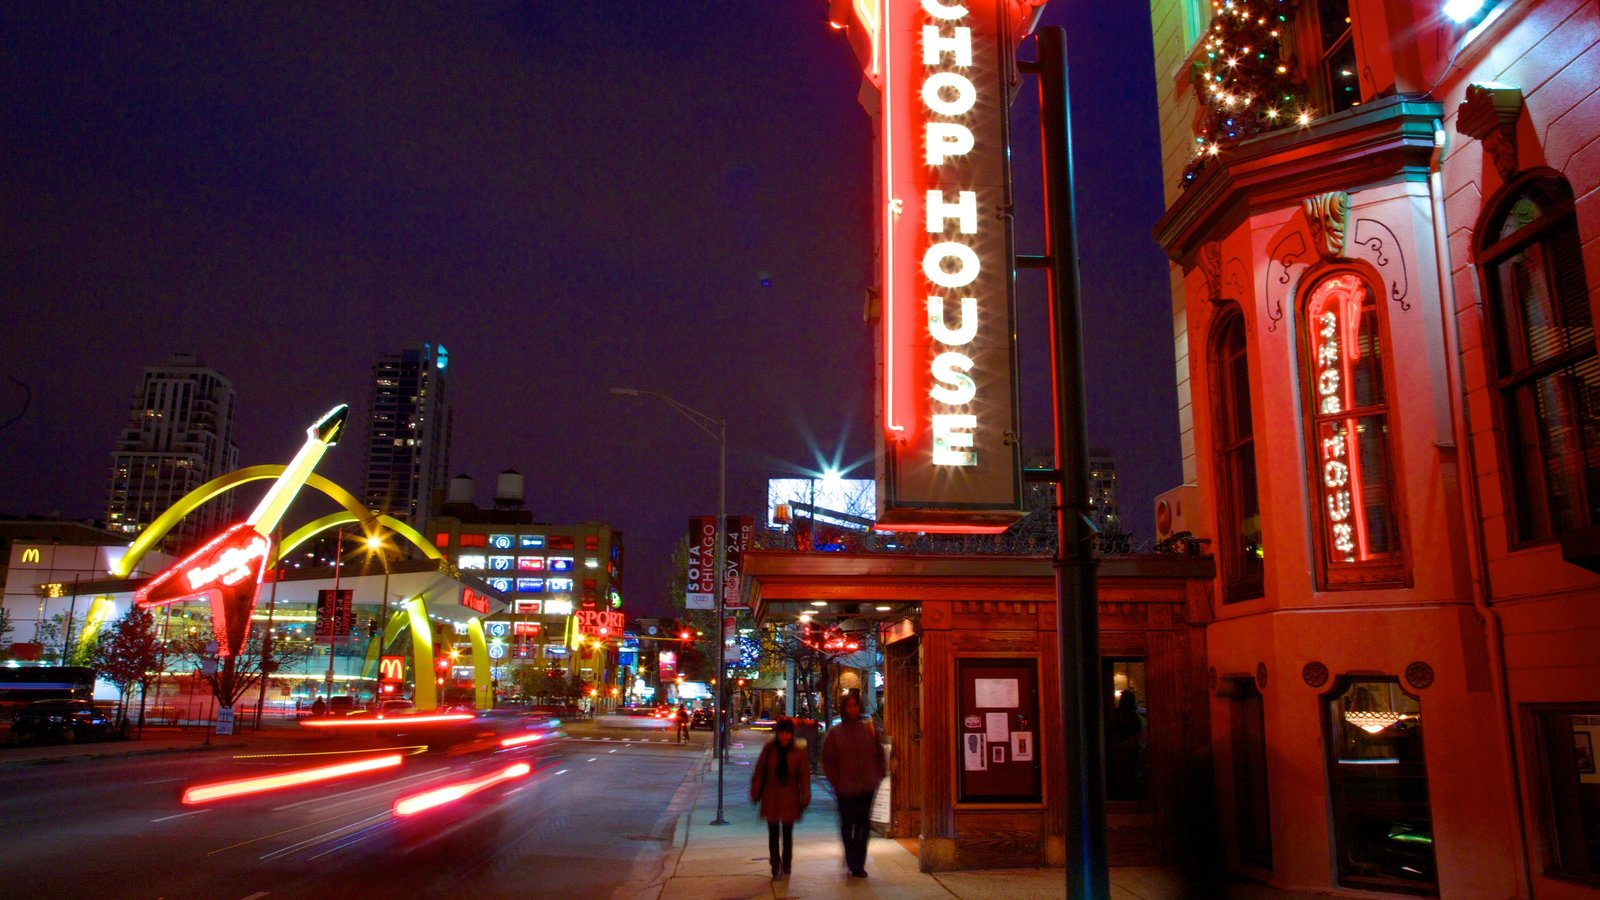 Magnificent Mile - River North showing signage, night scenes and street scenes